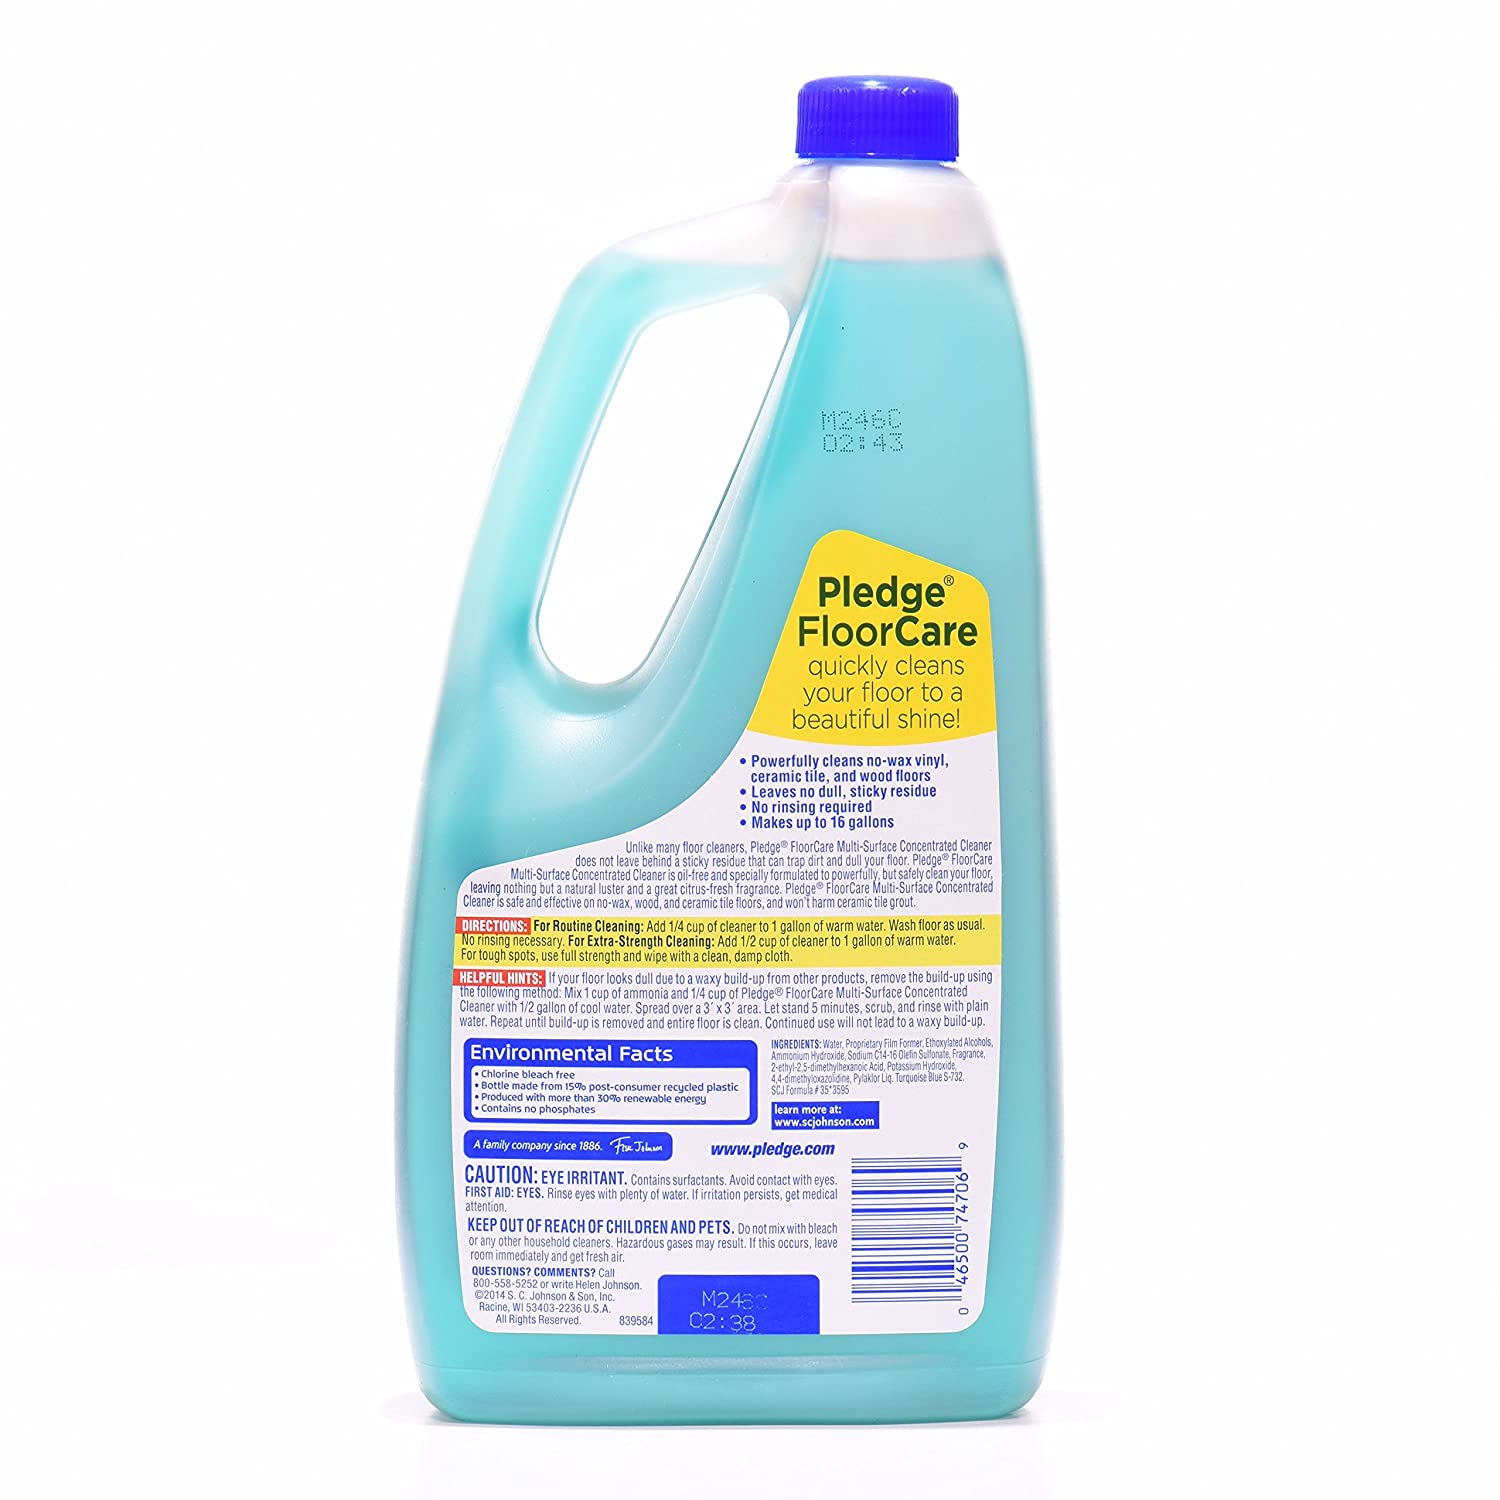 Amazon.com: Pledge Floor Care Concentrate Multi Surfalce Cleaner Glade  Rainshower: Health & Personal Care - Amazon.com: Pledge Floor Care Concentrate Multi Surfalce Cleaner